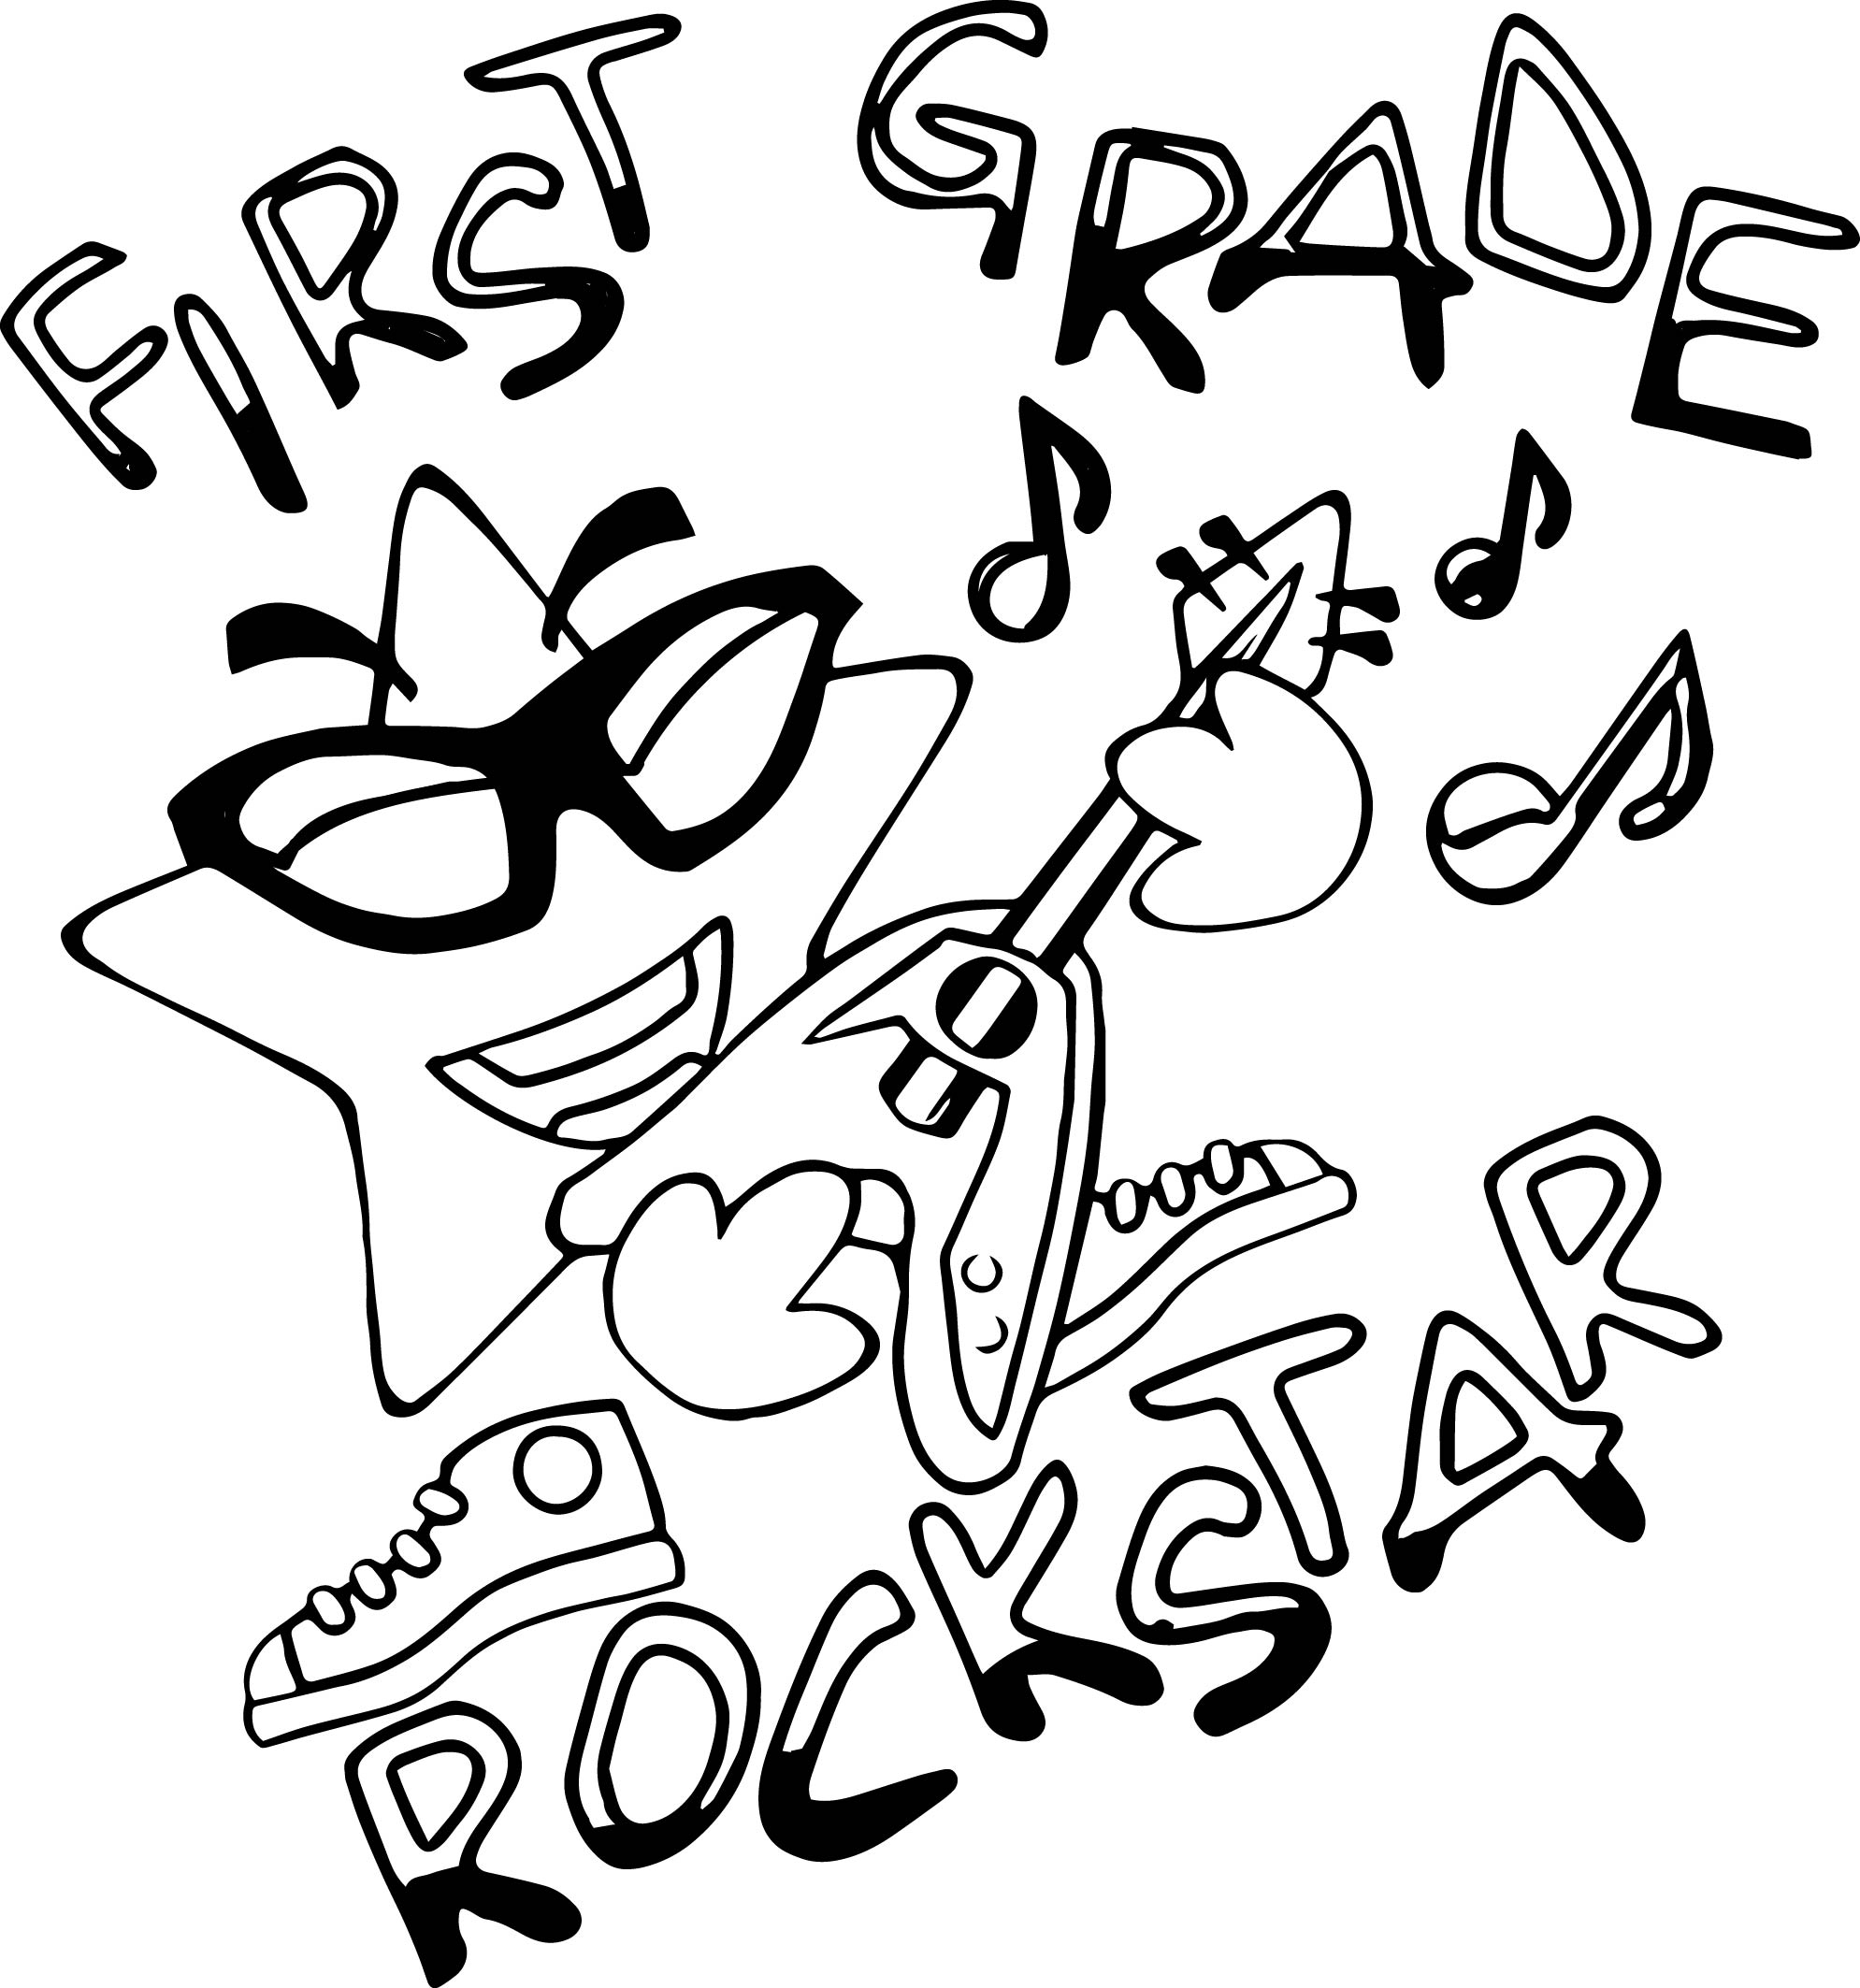 grade 1 coloring pages 1st grade coloring pages grade 1 pages coloring